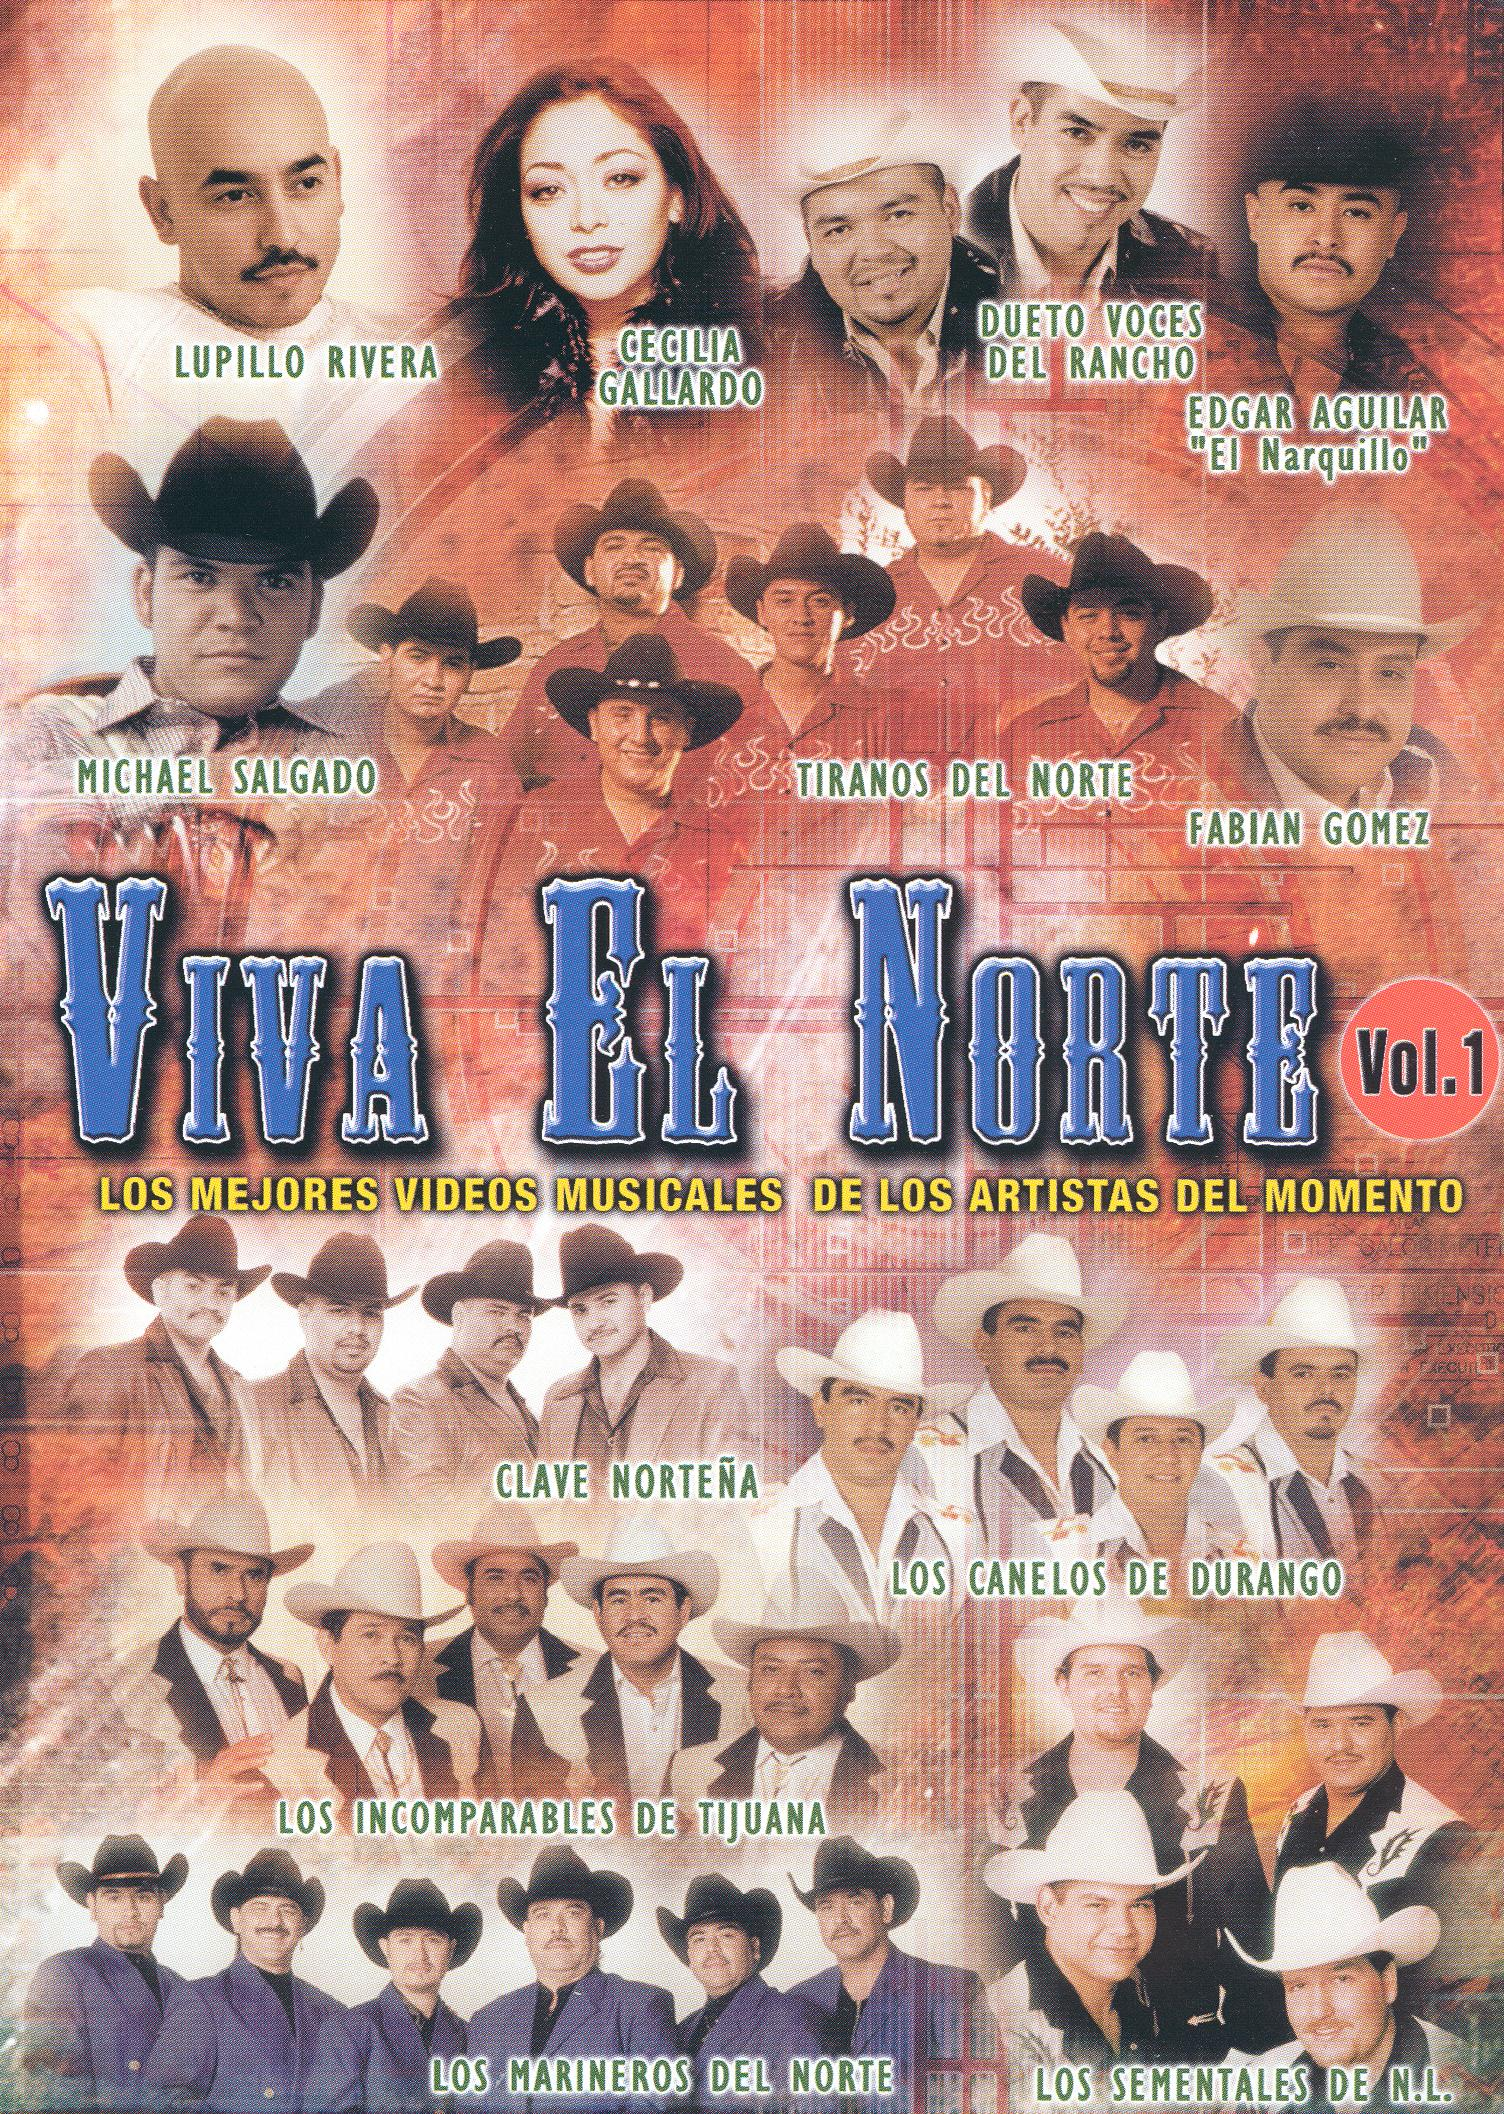 Viva El Norte, Vol. 1